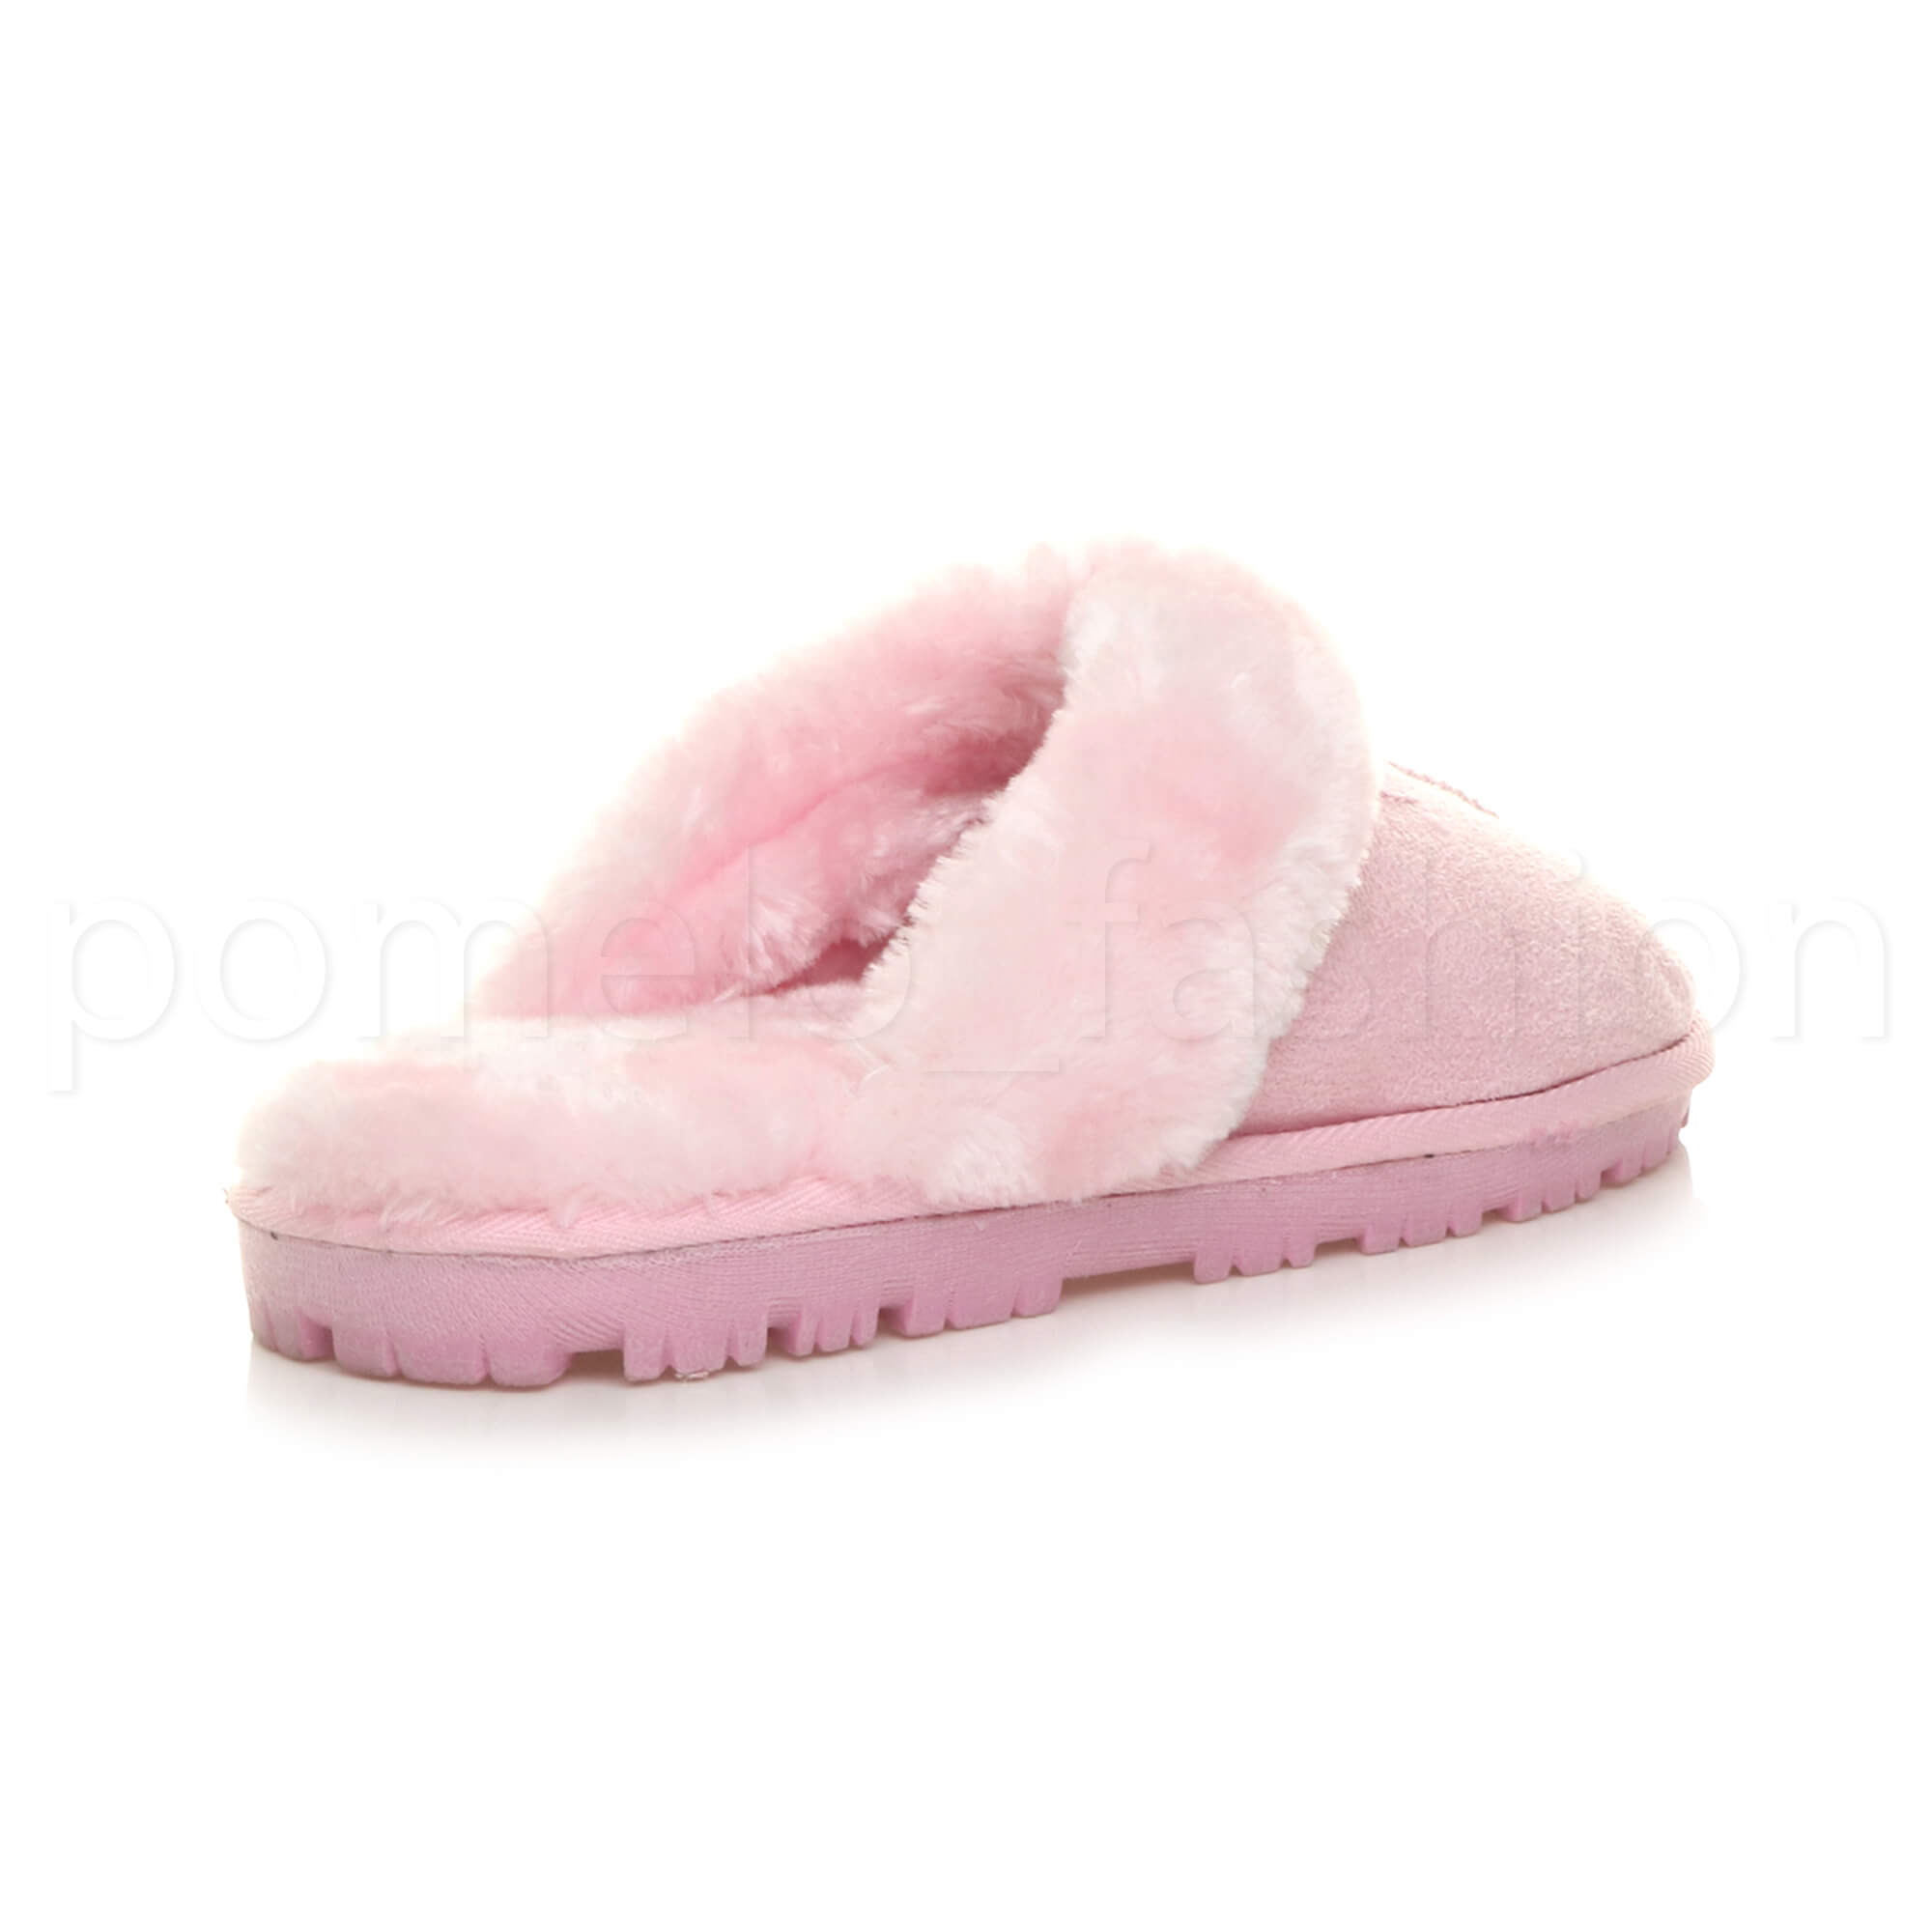 WOMENS-LADIES-FLAT-FUR-LINED-COMFORTABLE-WINTER-MULES-SLIPPERS-HOUSE-SHOES-SIZE thumbnail 68